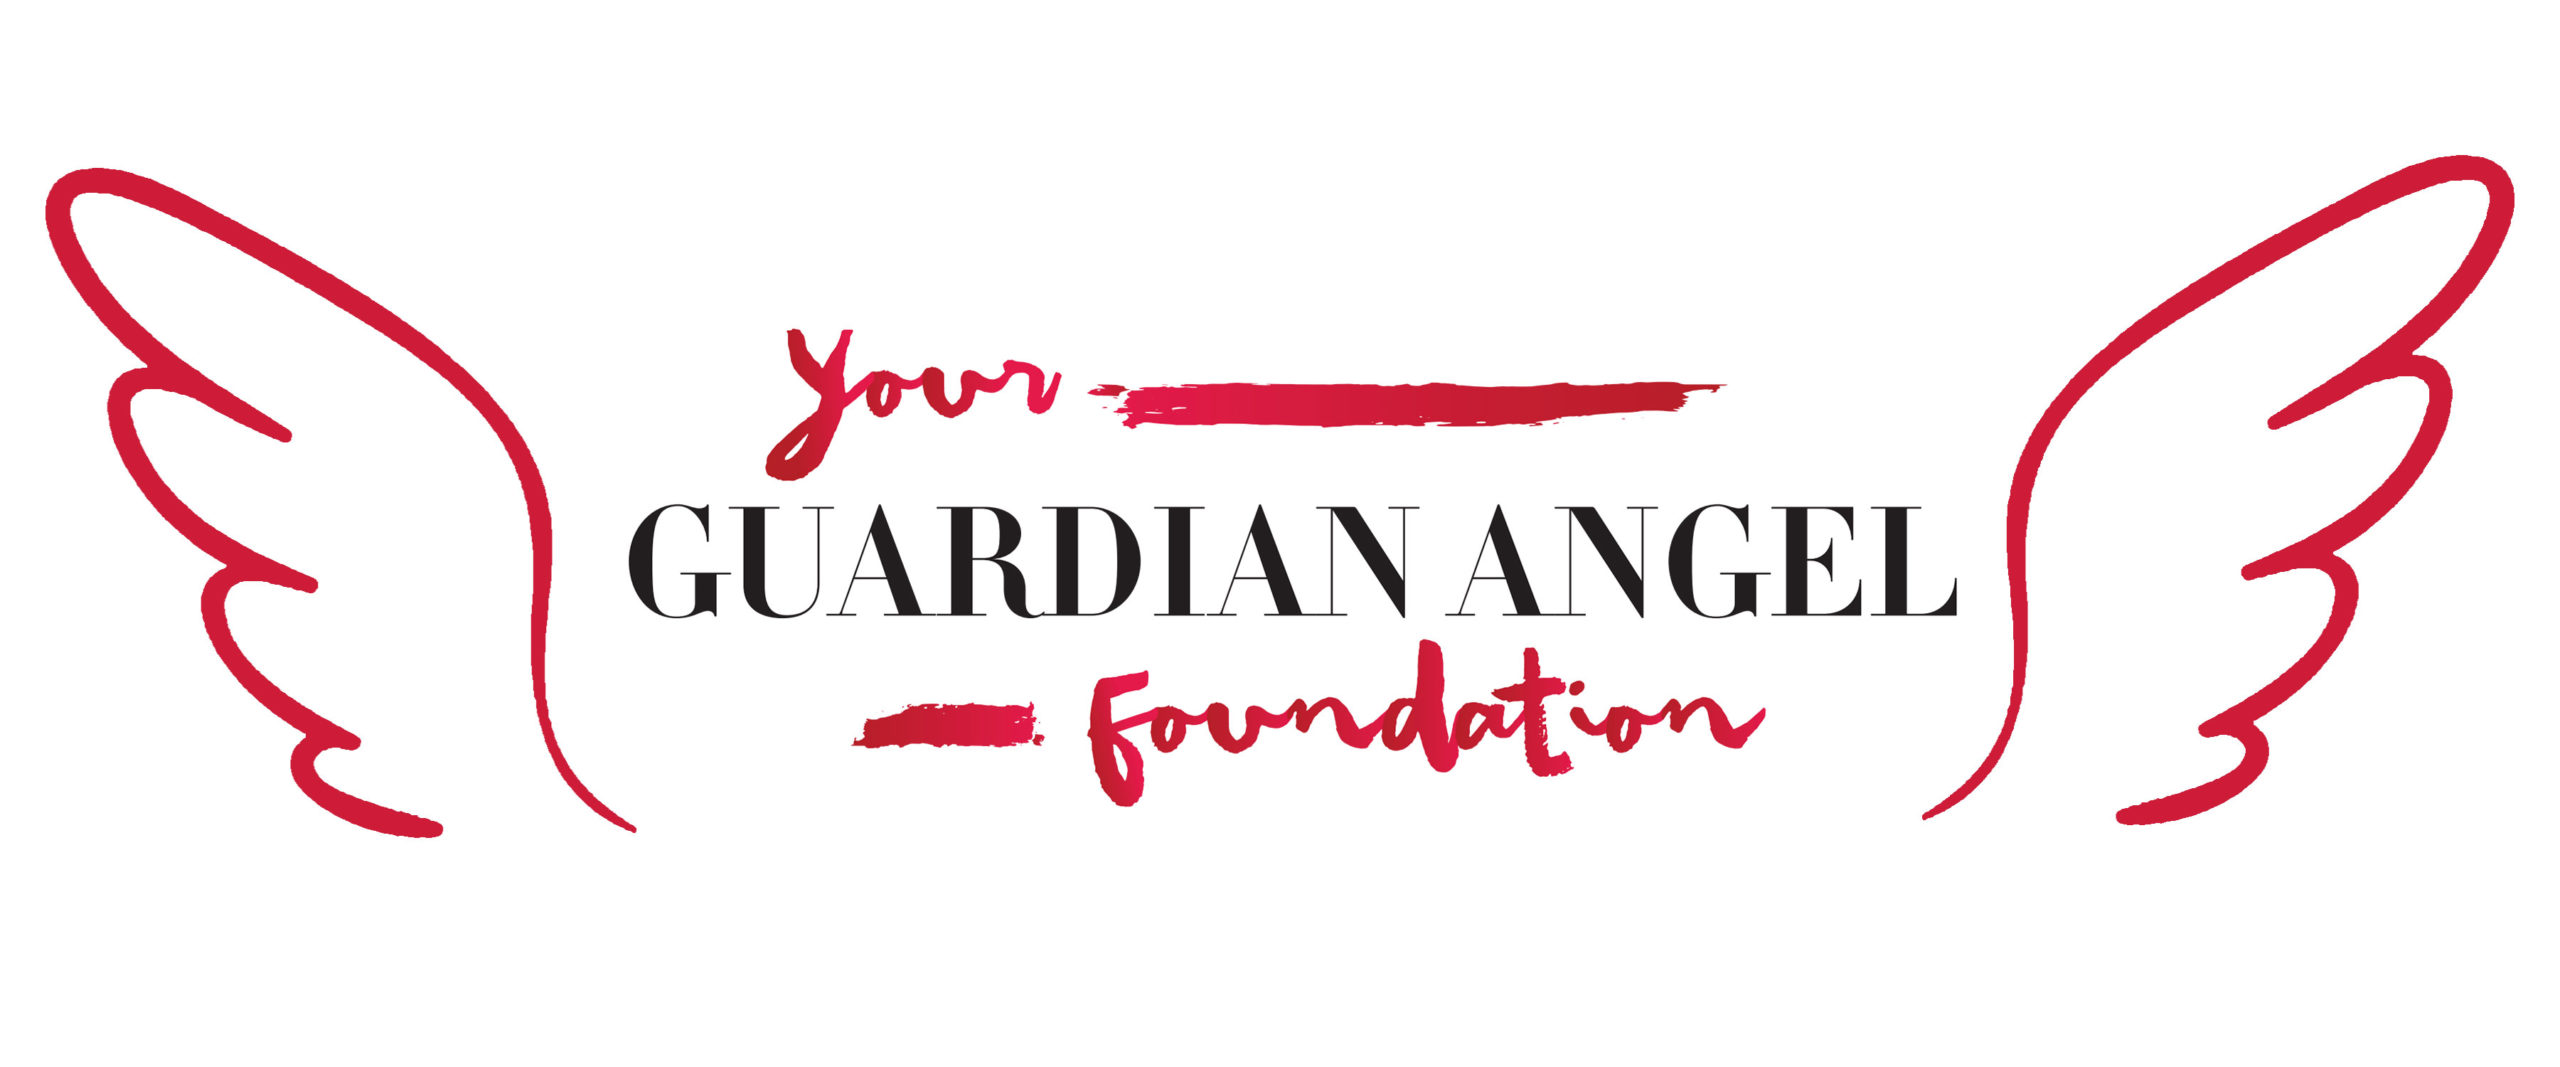 Your Guardian Angel Foundation